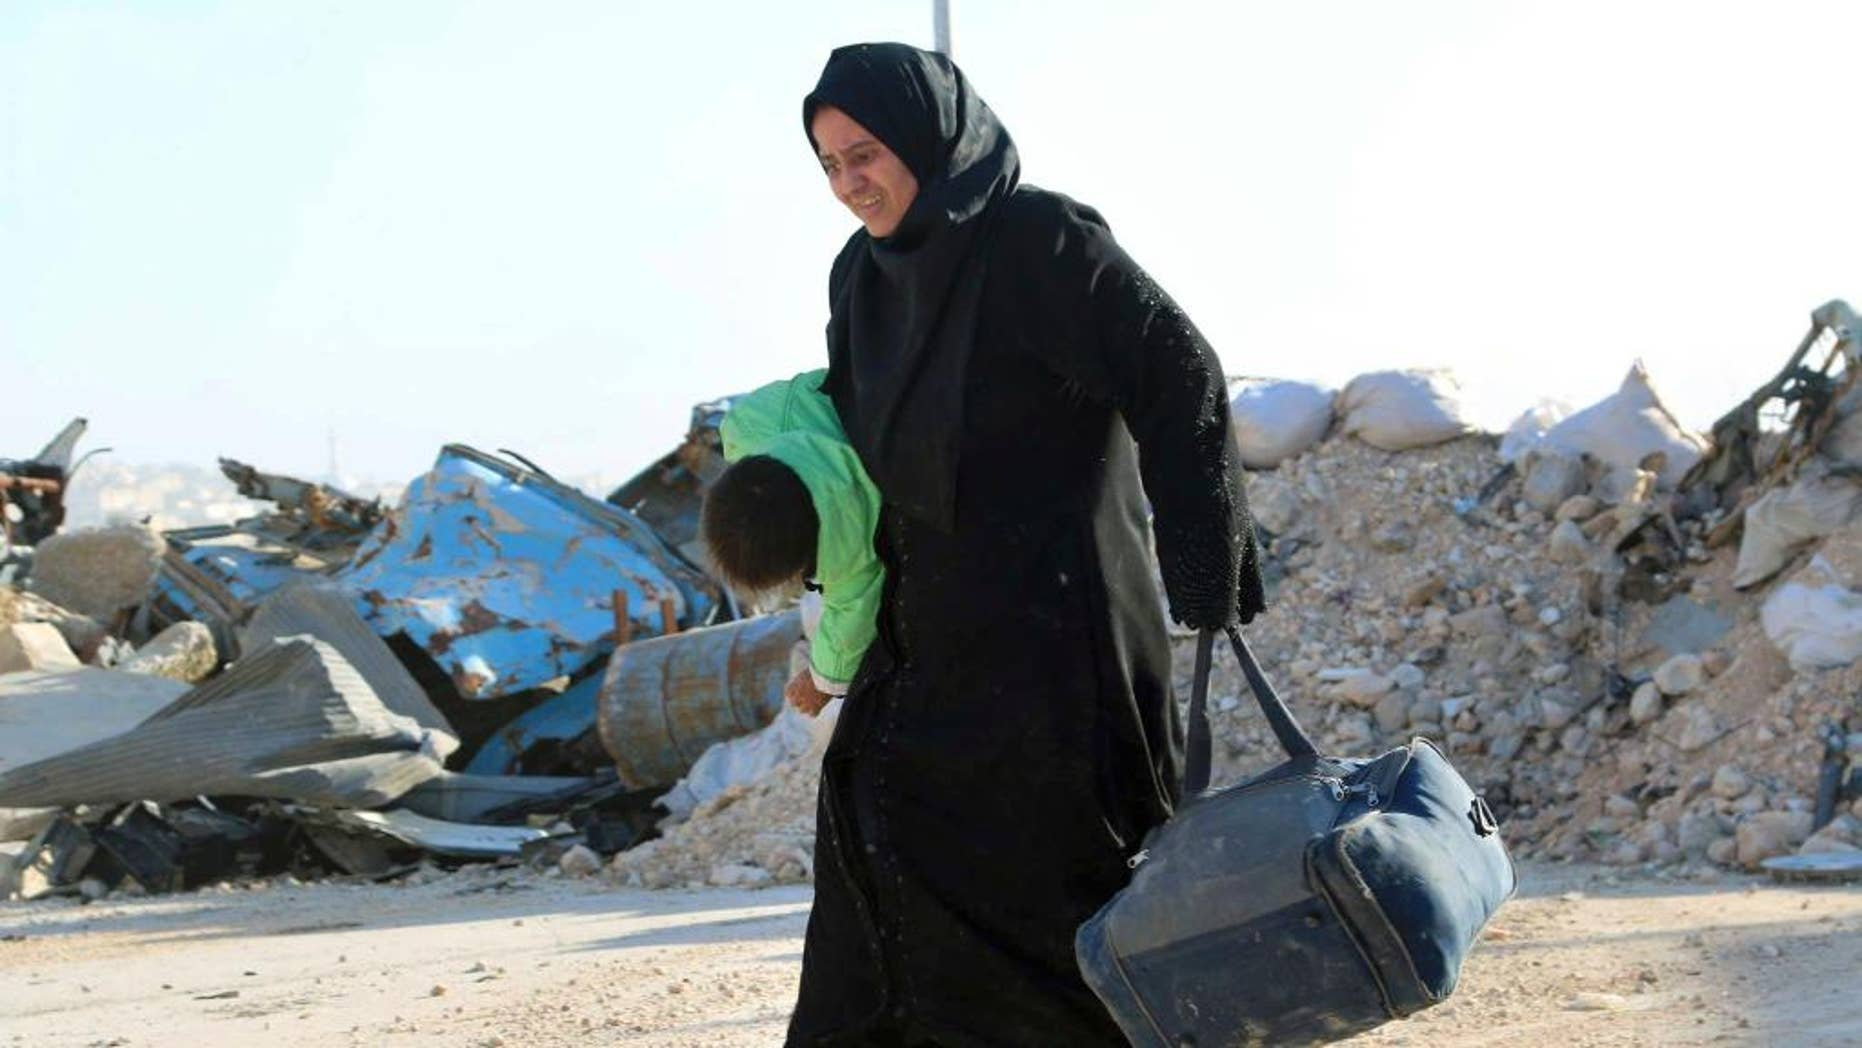 This Sunday, Nov. 27, 2016 photo provided by the Rumaf, a Syrian Kurdish activist group, which has been authenticated based on its contents and other AP reporting, shows A Syrian woman carrying her child in one hand and a bag in the other, as she flees rebel-held eastern neighborhoods of Aleppo into the Sheikh Maqsoud area that is controlled by Kurdish fighters, Syria. Syrian state media is reporting that government forces have captured the eastern Aleppo neighborhood of Sakhour, putting much of the northern part of Aleppo's besieged rebel-held areas under state control. (The Rumaf via AP)